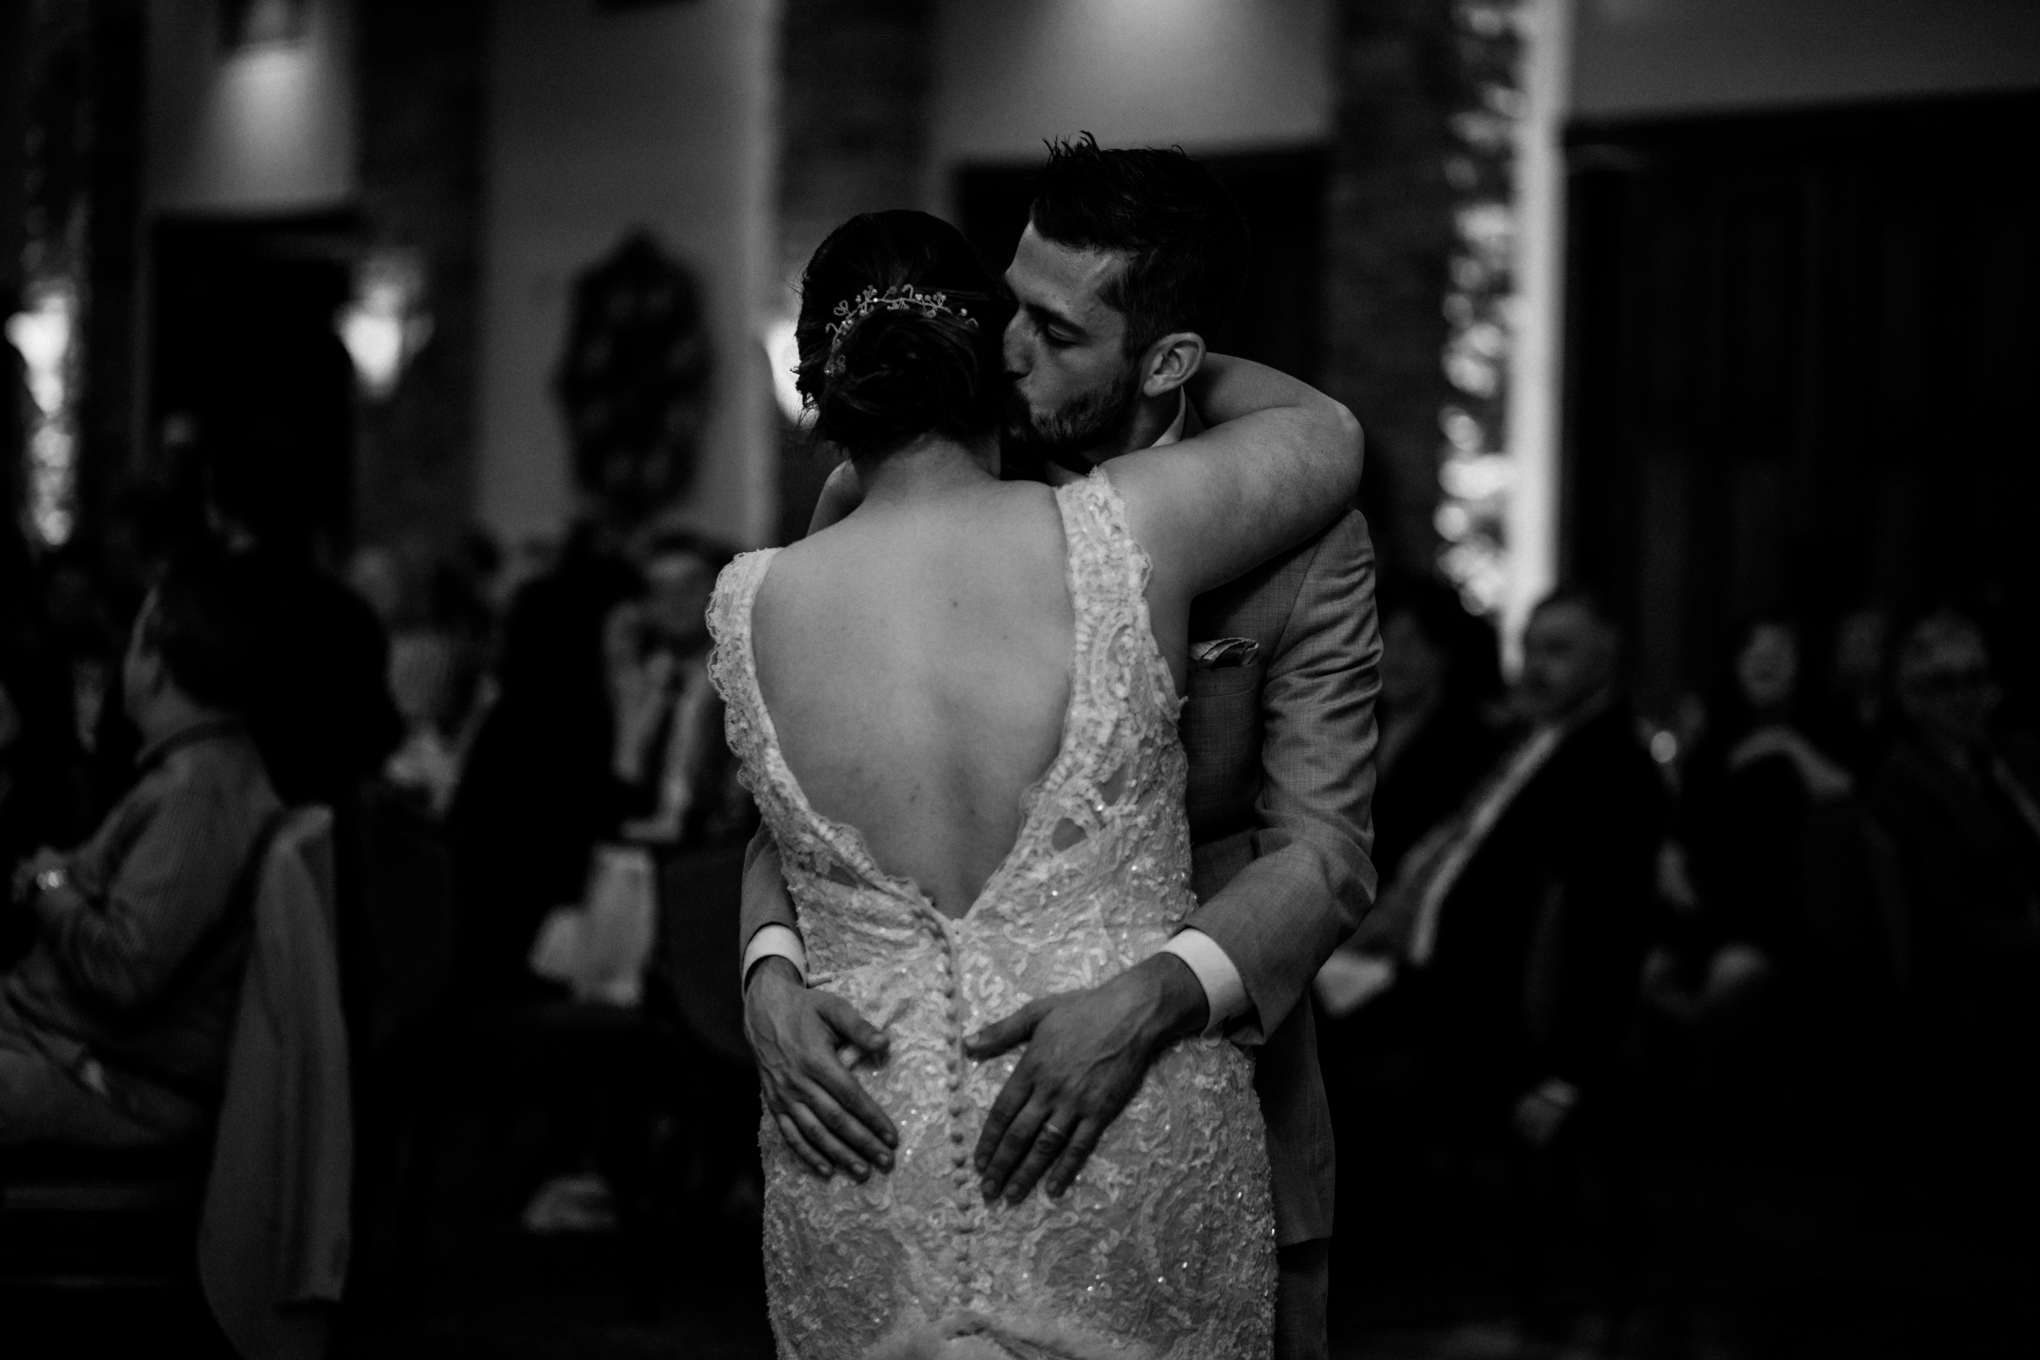 bride-and-groom-first-dance-at-brandybrook-black-and-white.jpg